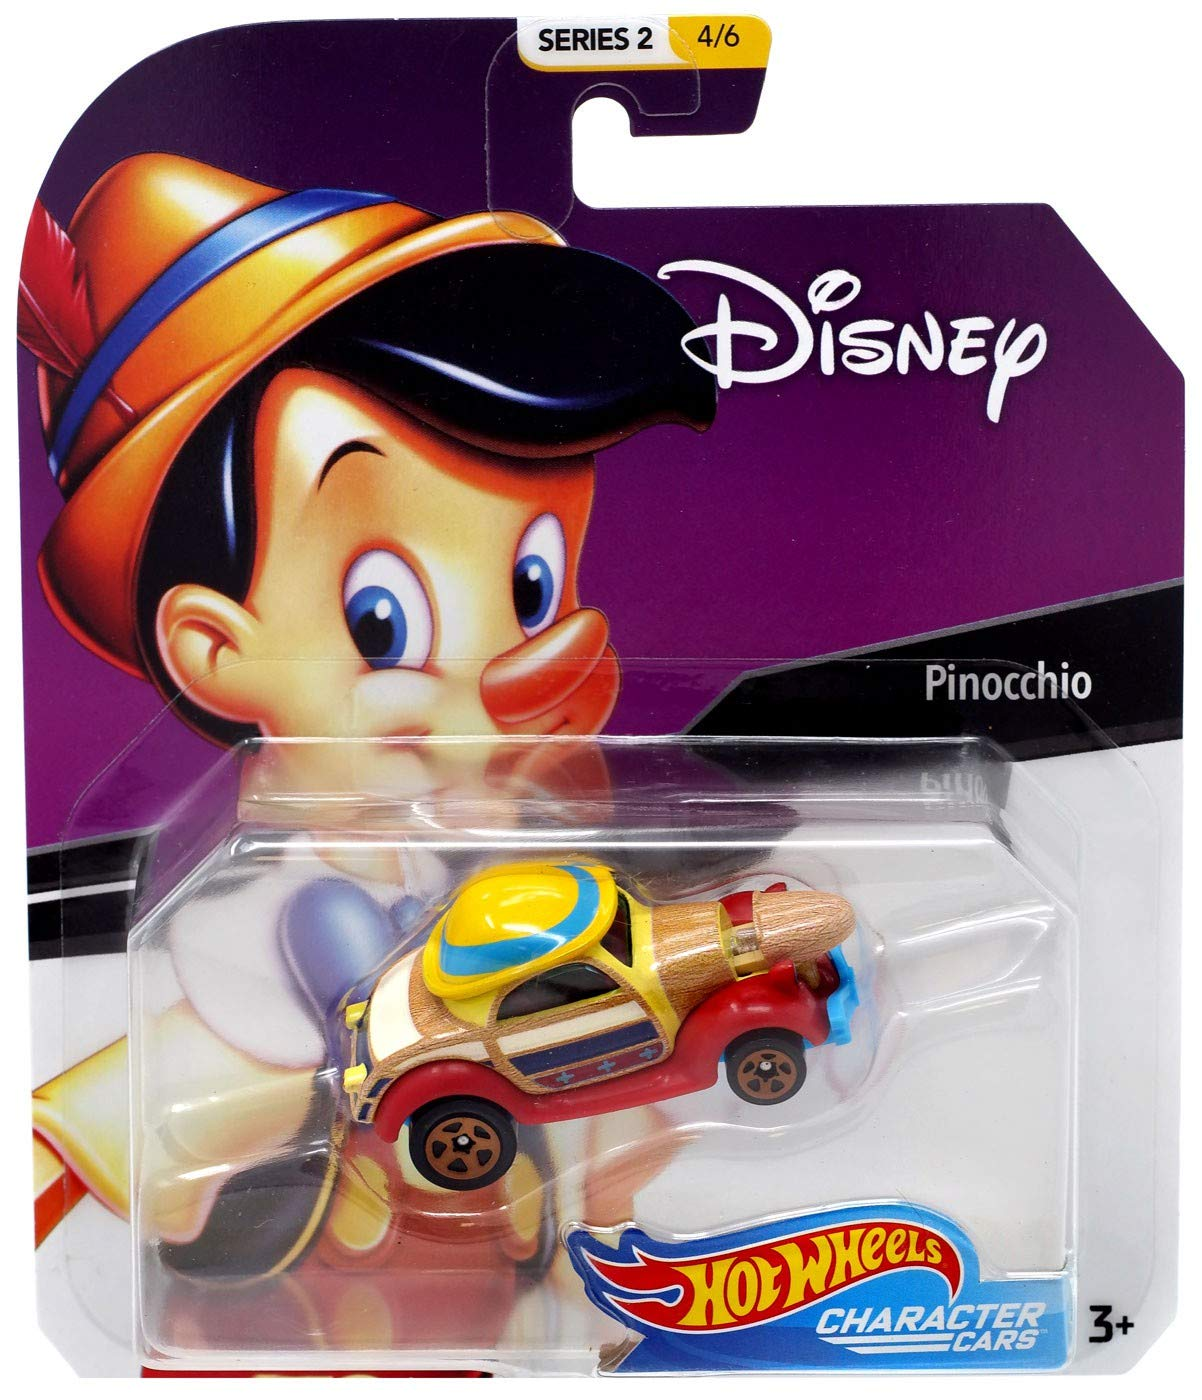 ac28b69007ad8 Pinocchio Hot Wheels Disney Character Cars Diecast Car 1:64 Scale